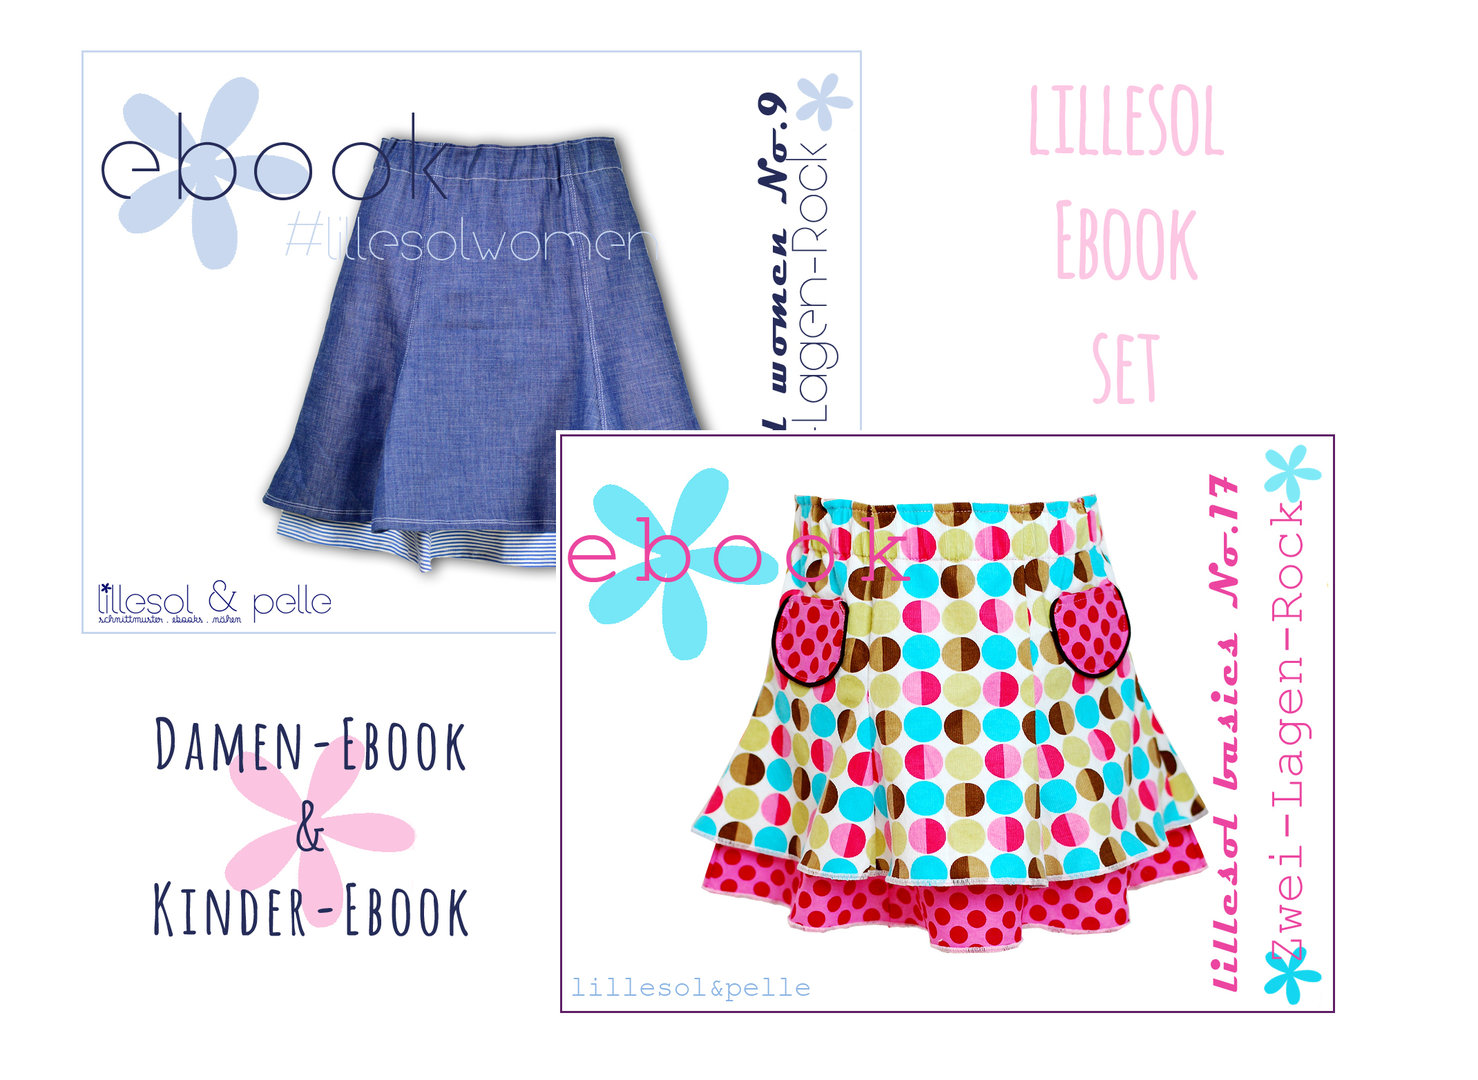 lillesol ebook set basic No.17 und women No.9 * mit Video-Nähanleitung *